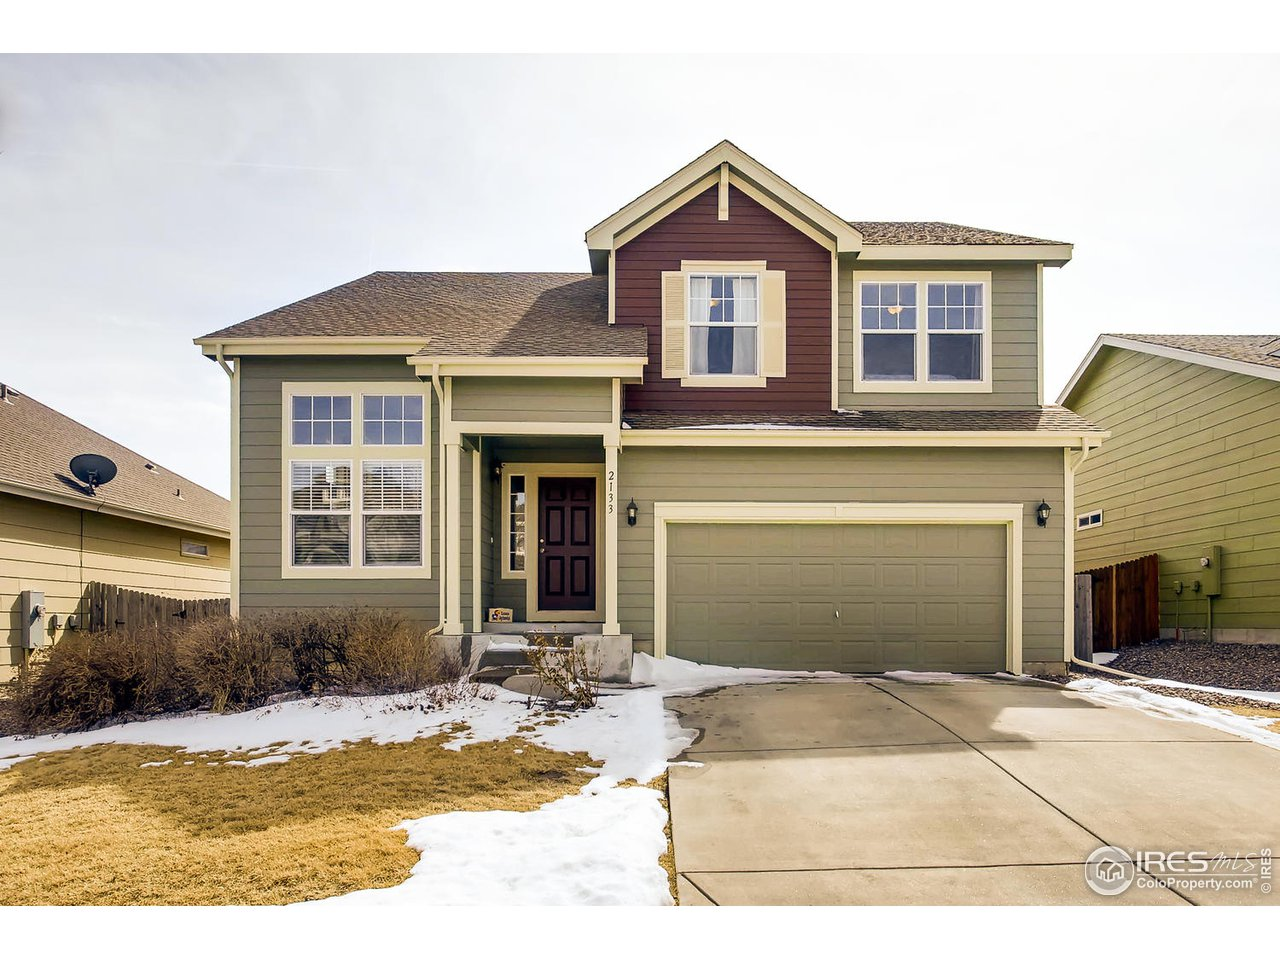 2133 CLIPPER WAY, FORT COLLINS, CO 80524